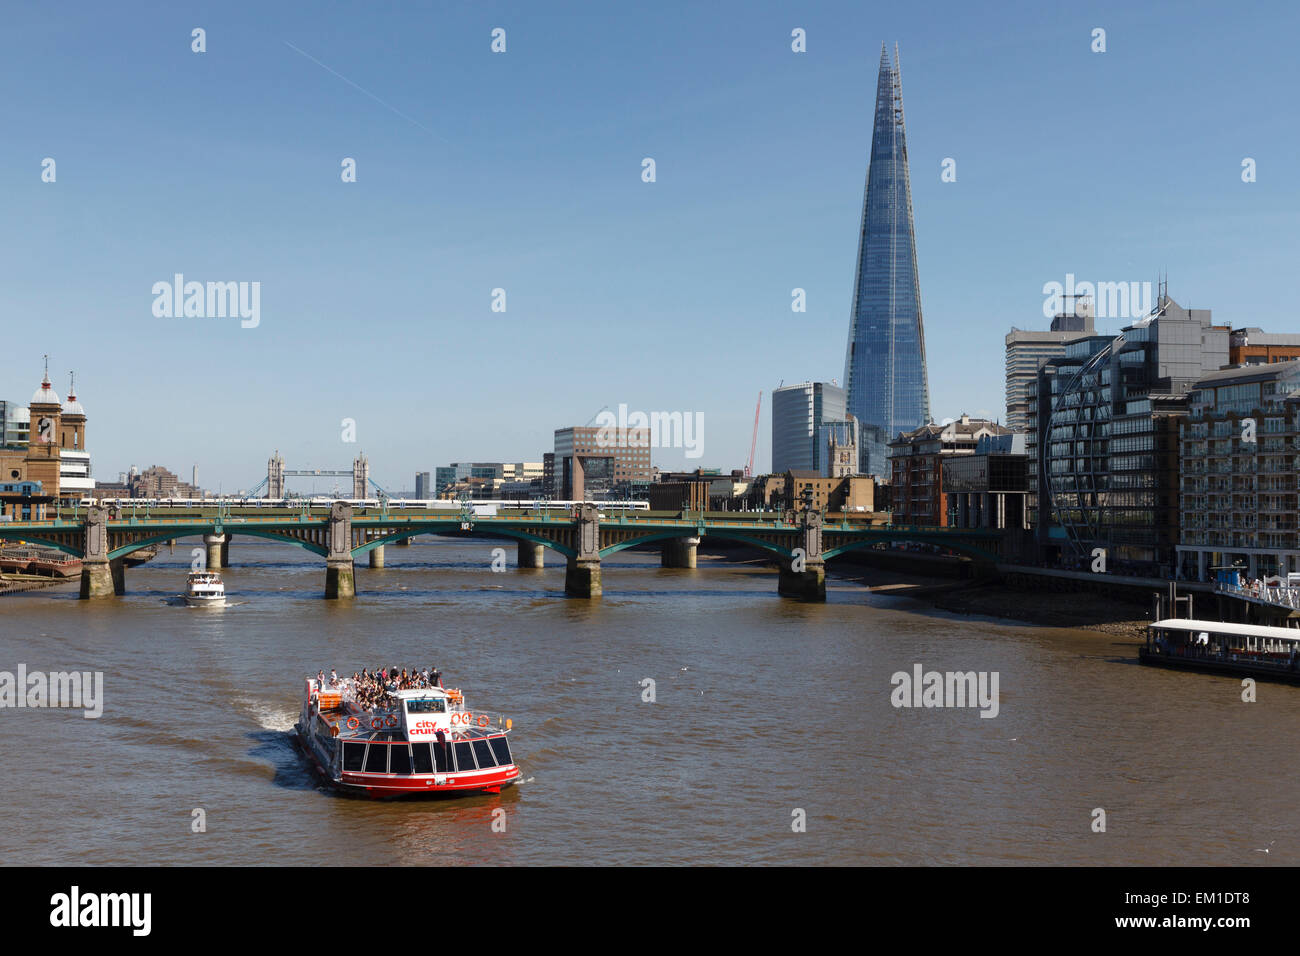 City cruises boat trip on the River Thames, London in front of the Shard building and Southwark Bridge - Stock Image